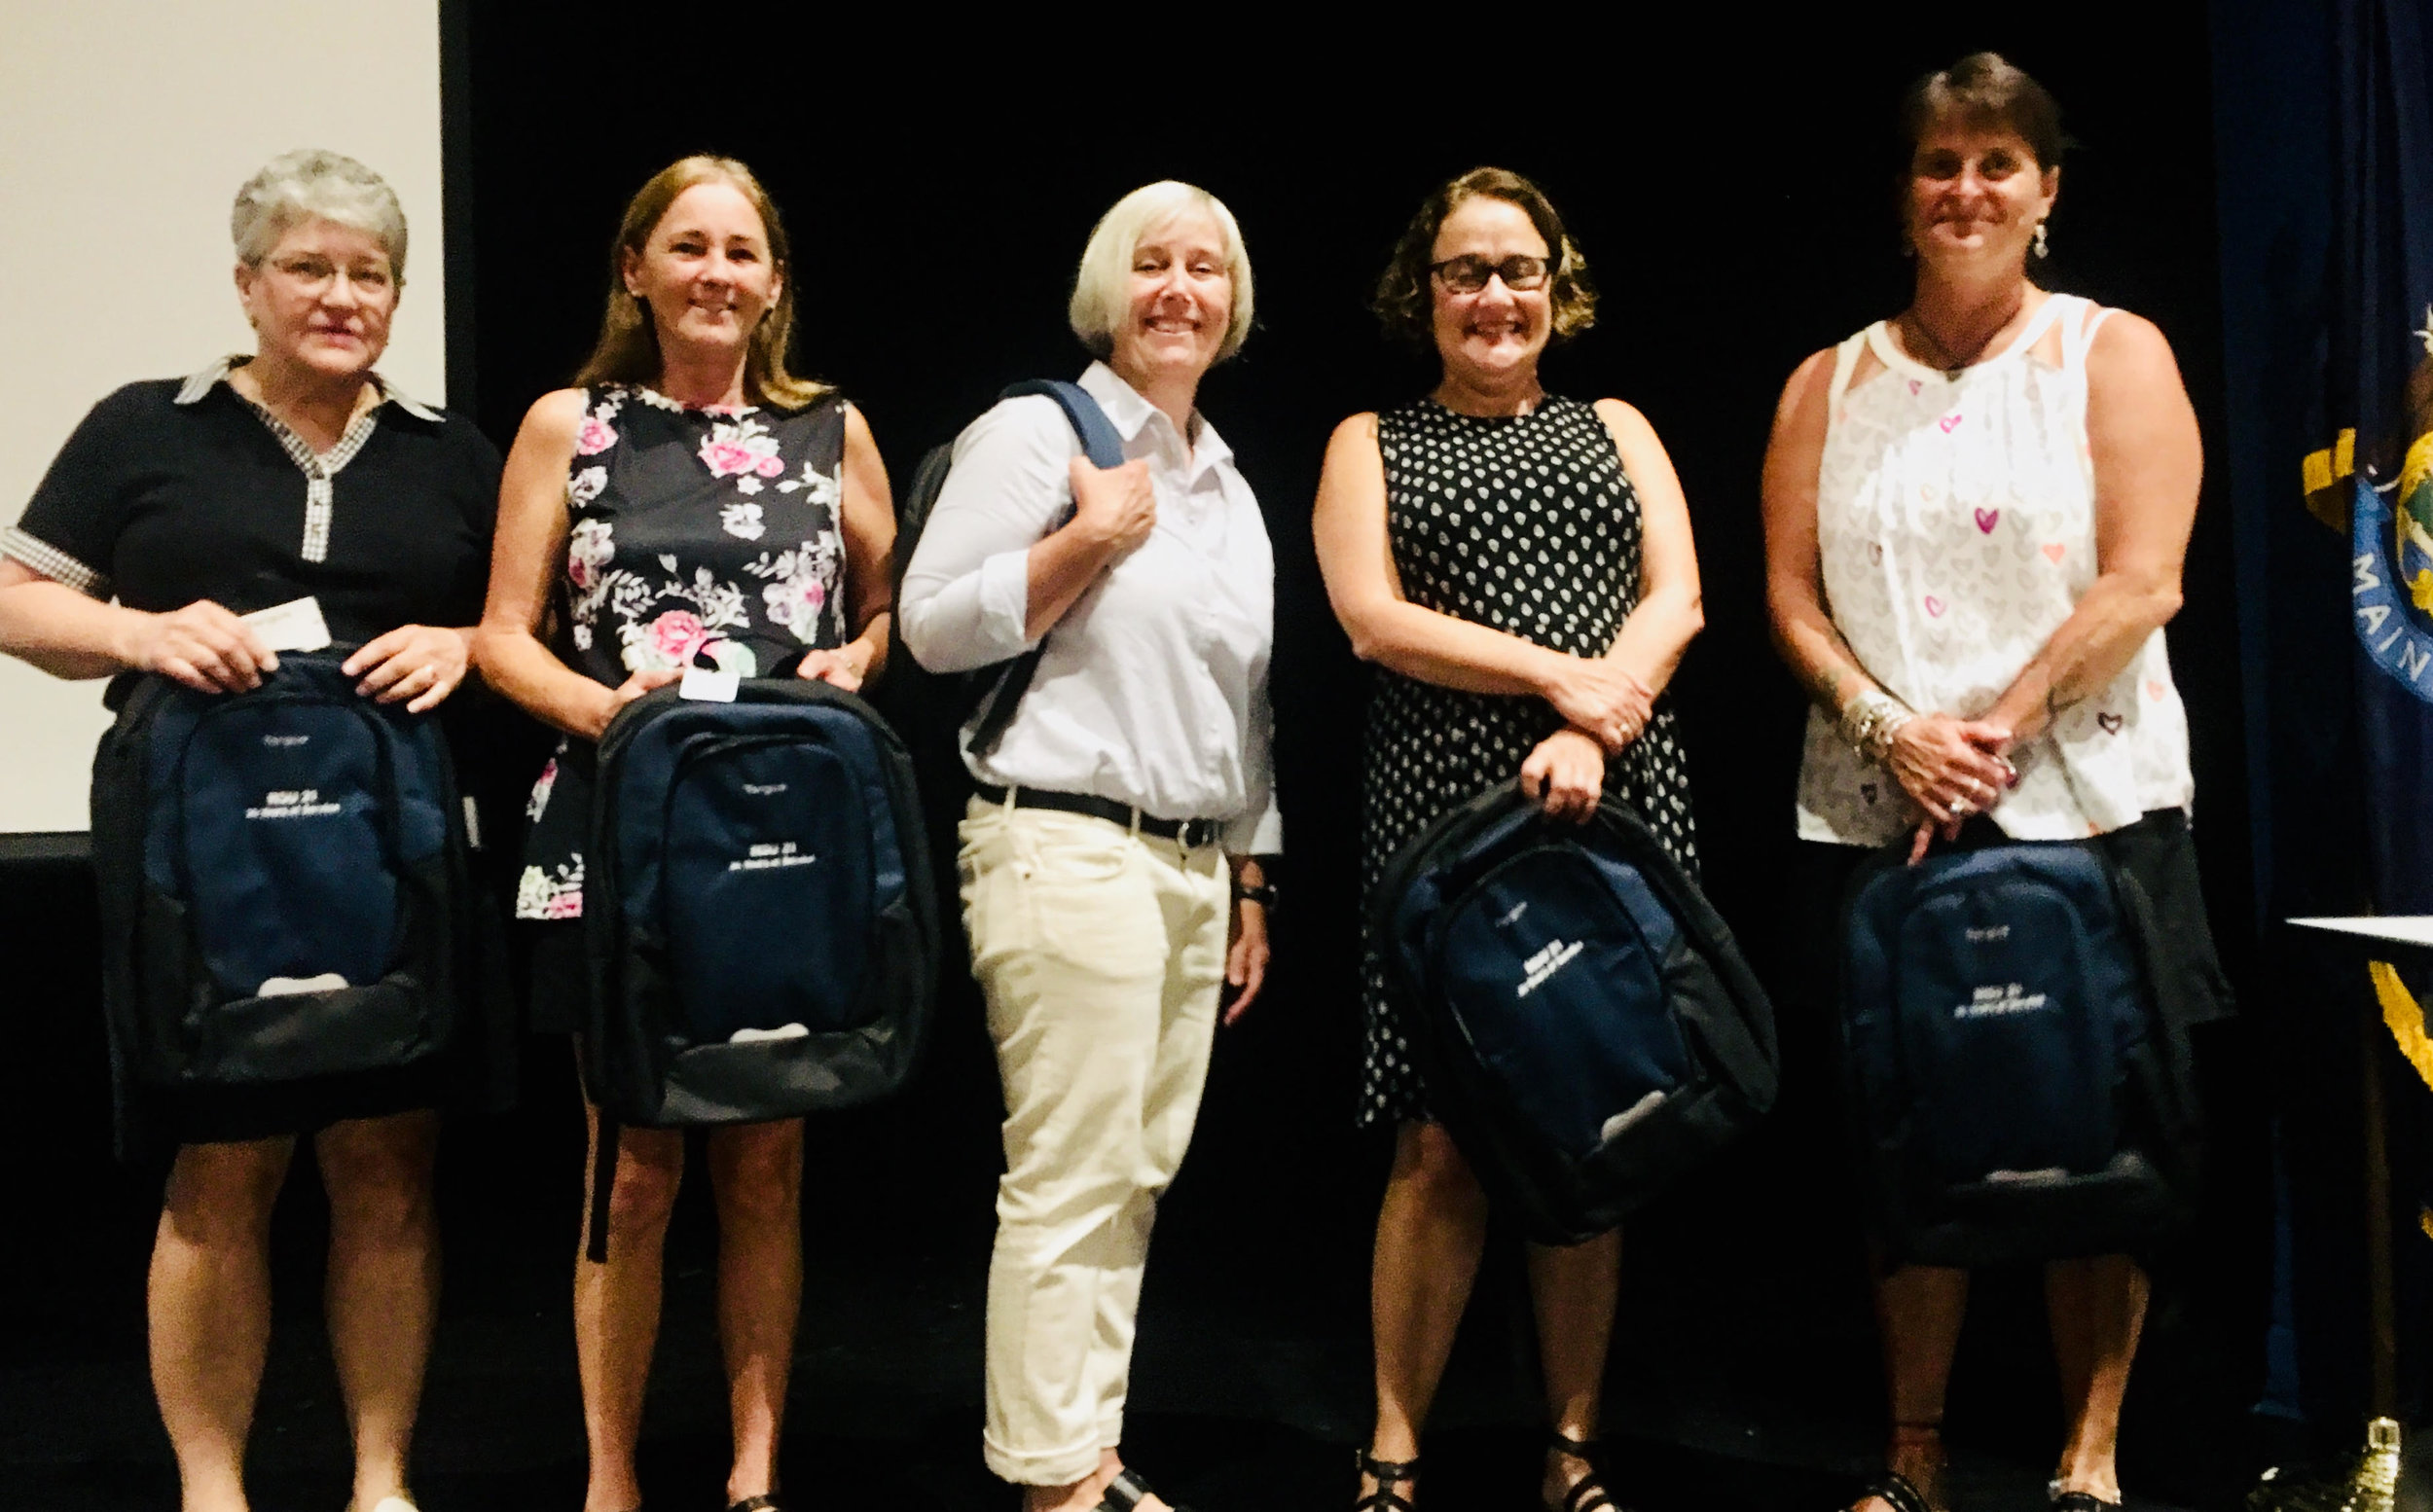 30 Years of Service to RSU 21  -Alyce Swan - Sherry Allen and Donna Lewia (not pictured) - Kathy Hirst - Mary Ellen Foley - Victoria Cherry - Jen French